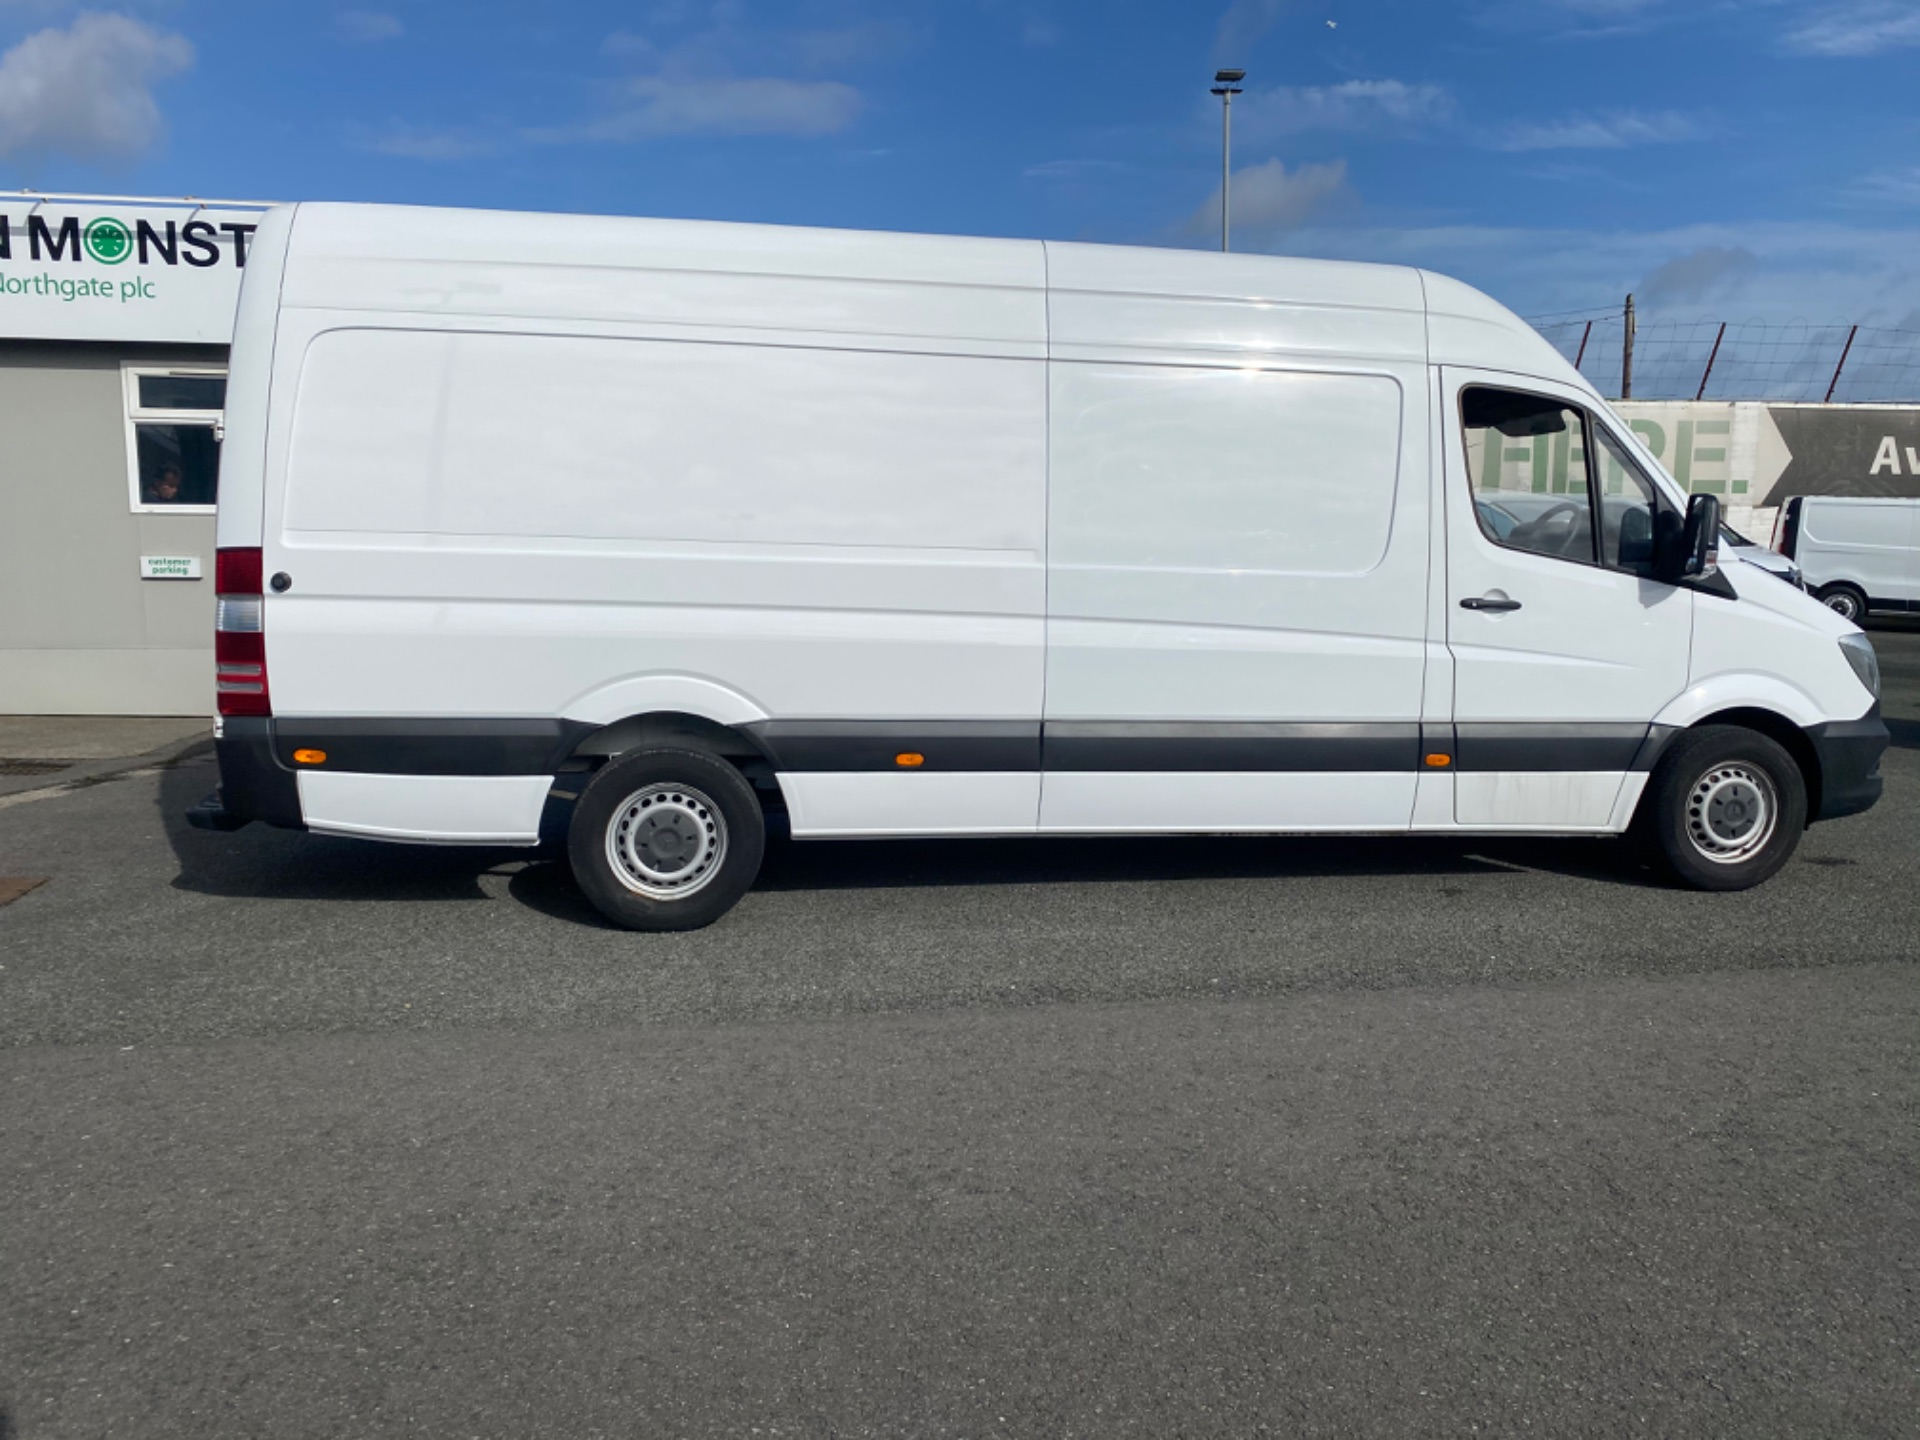 2017 Mercedes-Benz Sprinter 314/43 EU6 6DR (172D20173) Thumbnail 8